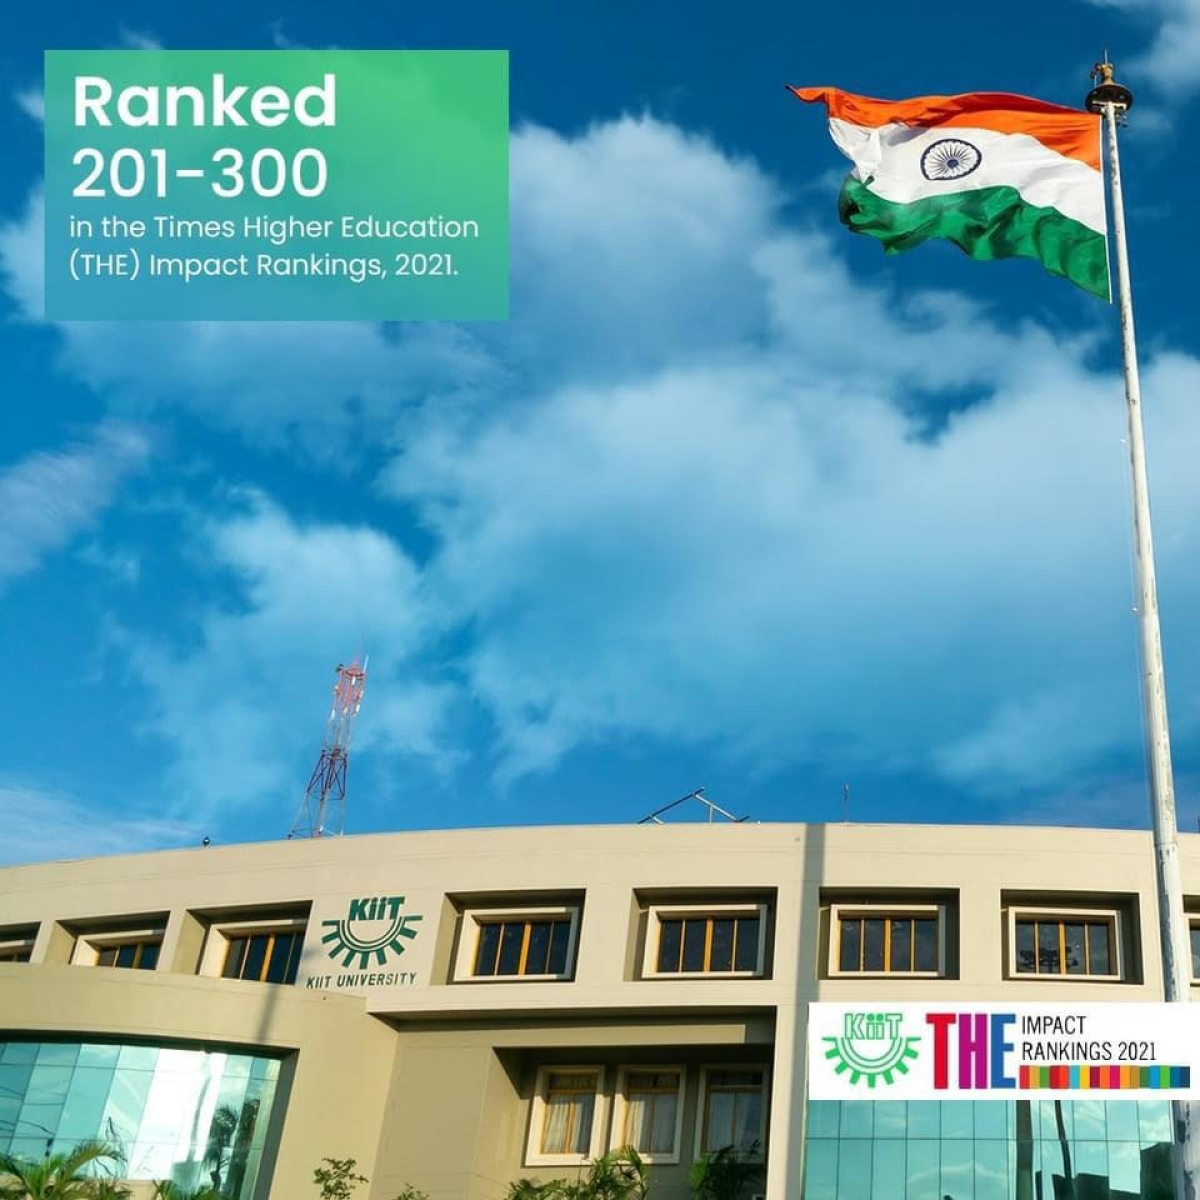 KIIT ranked 201+ globally in Times Higher Education Impact Rankings